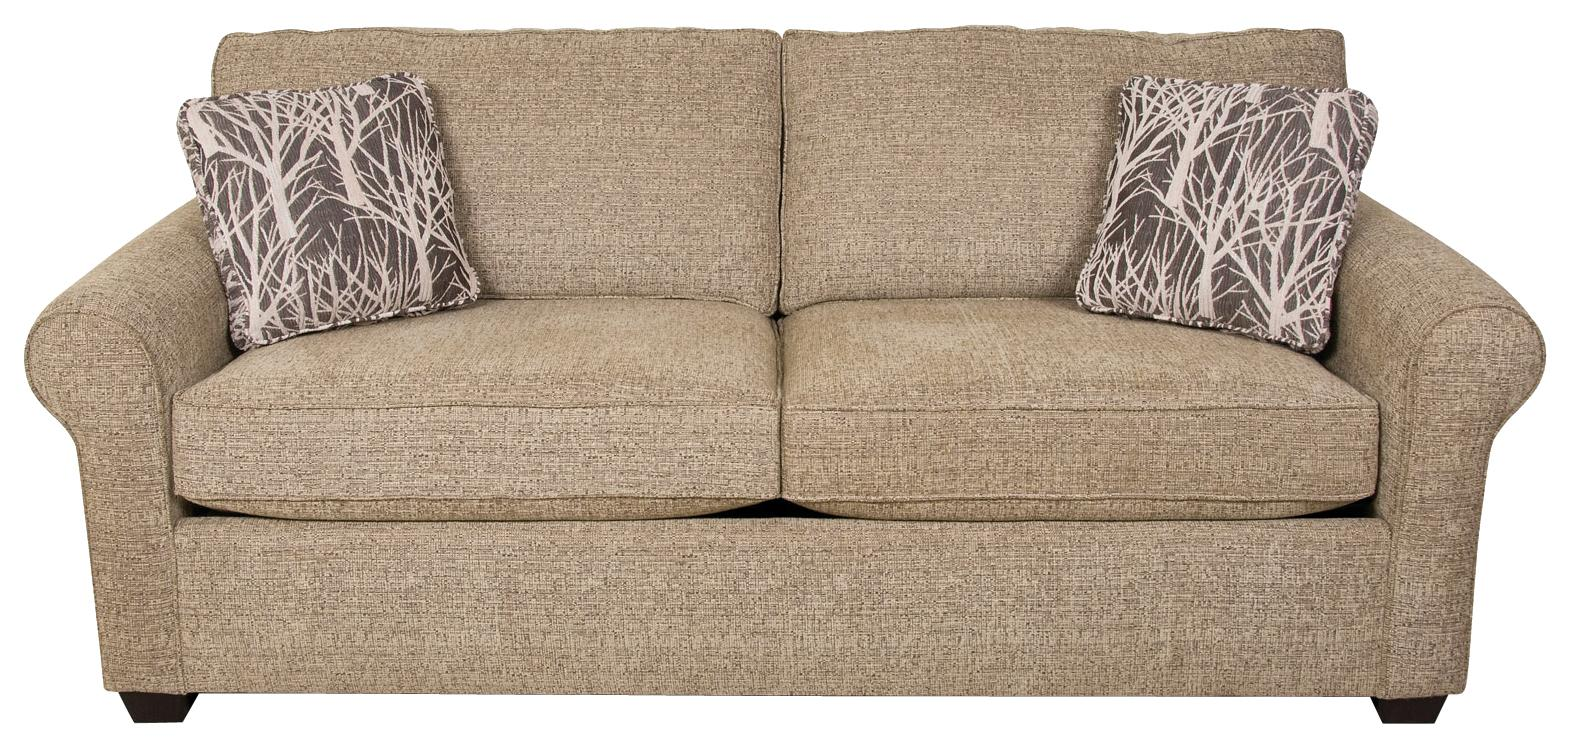 England Seabury Queen Size Sleeper Sofa With Casual Style